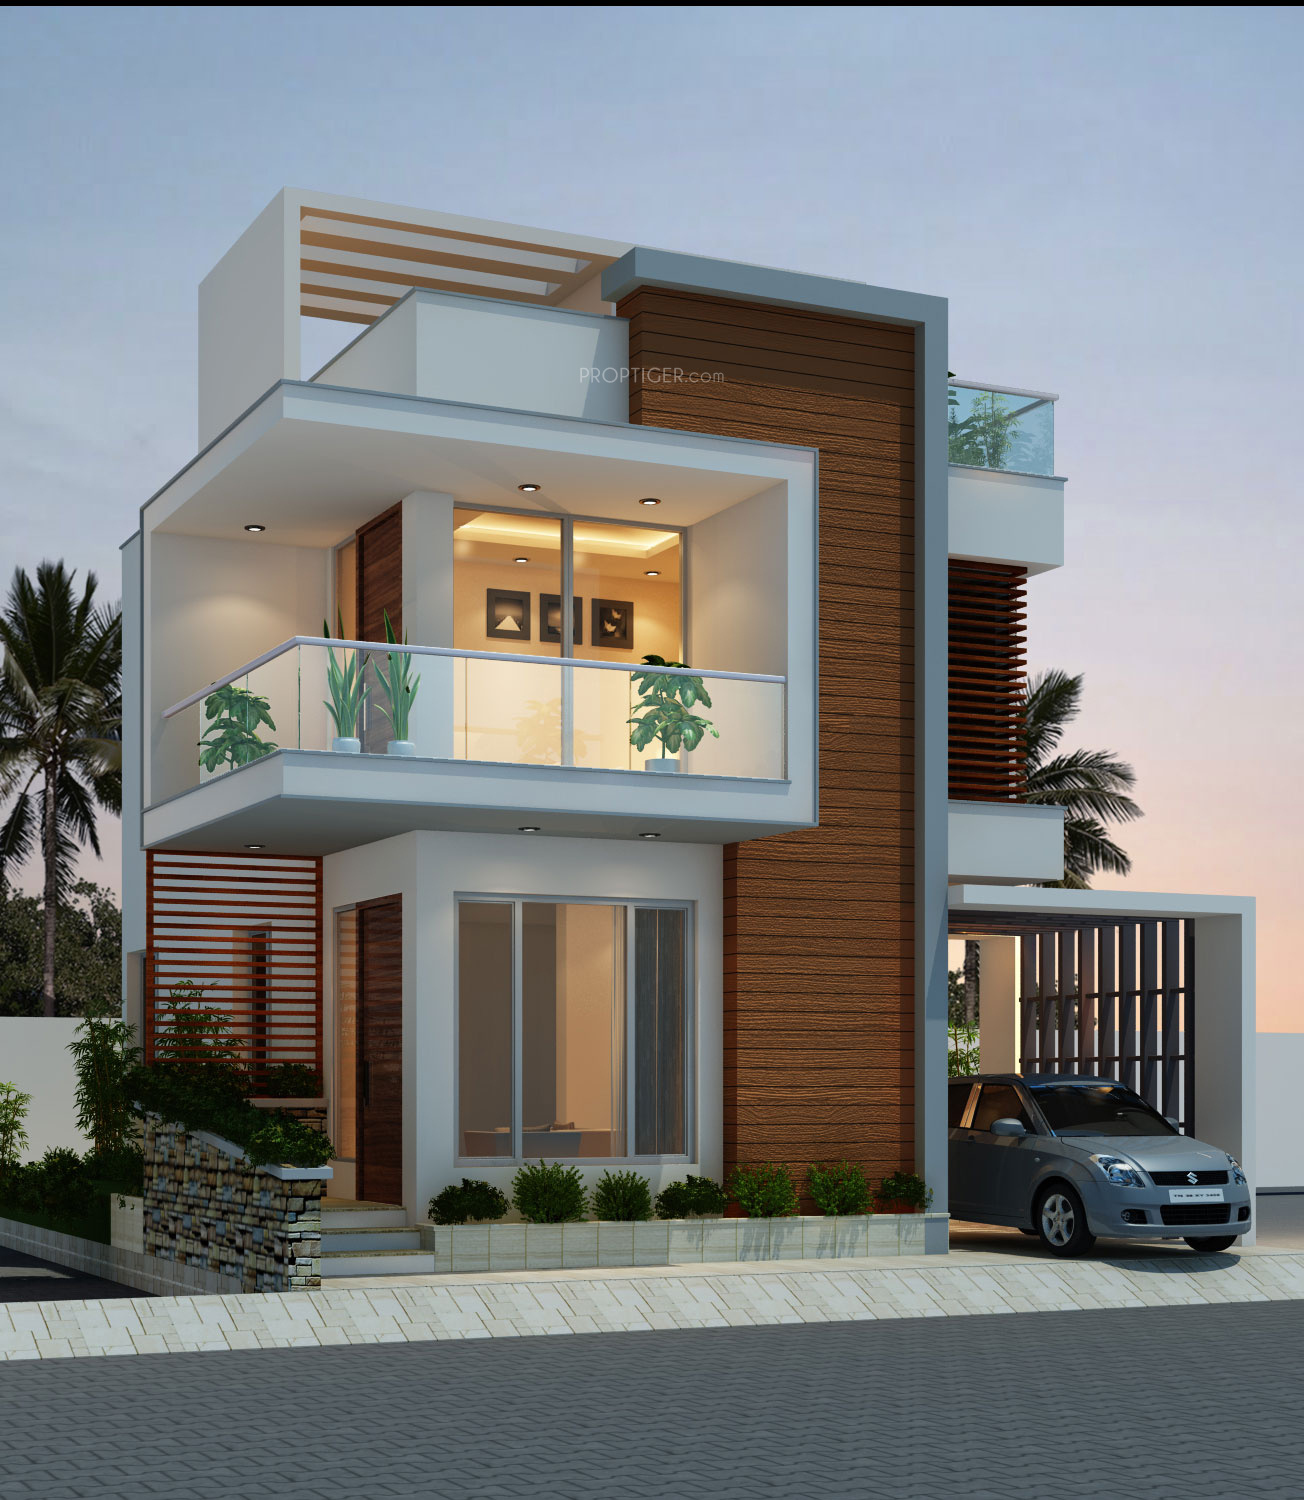 New N Home Elevation : Headway fortune residency villa in perungalathur chennai